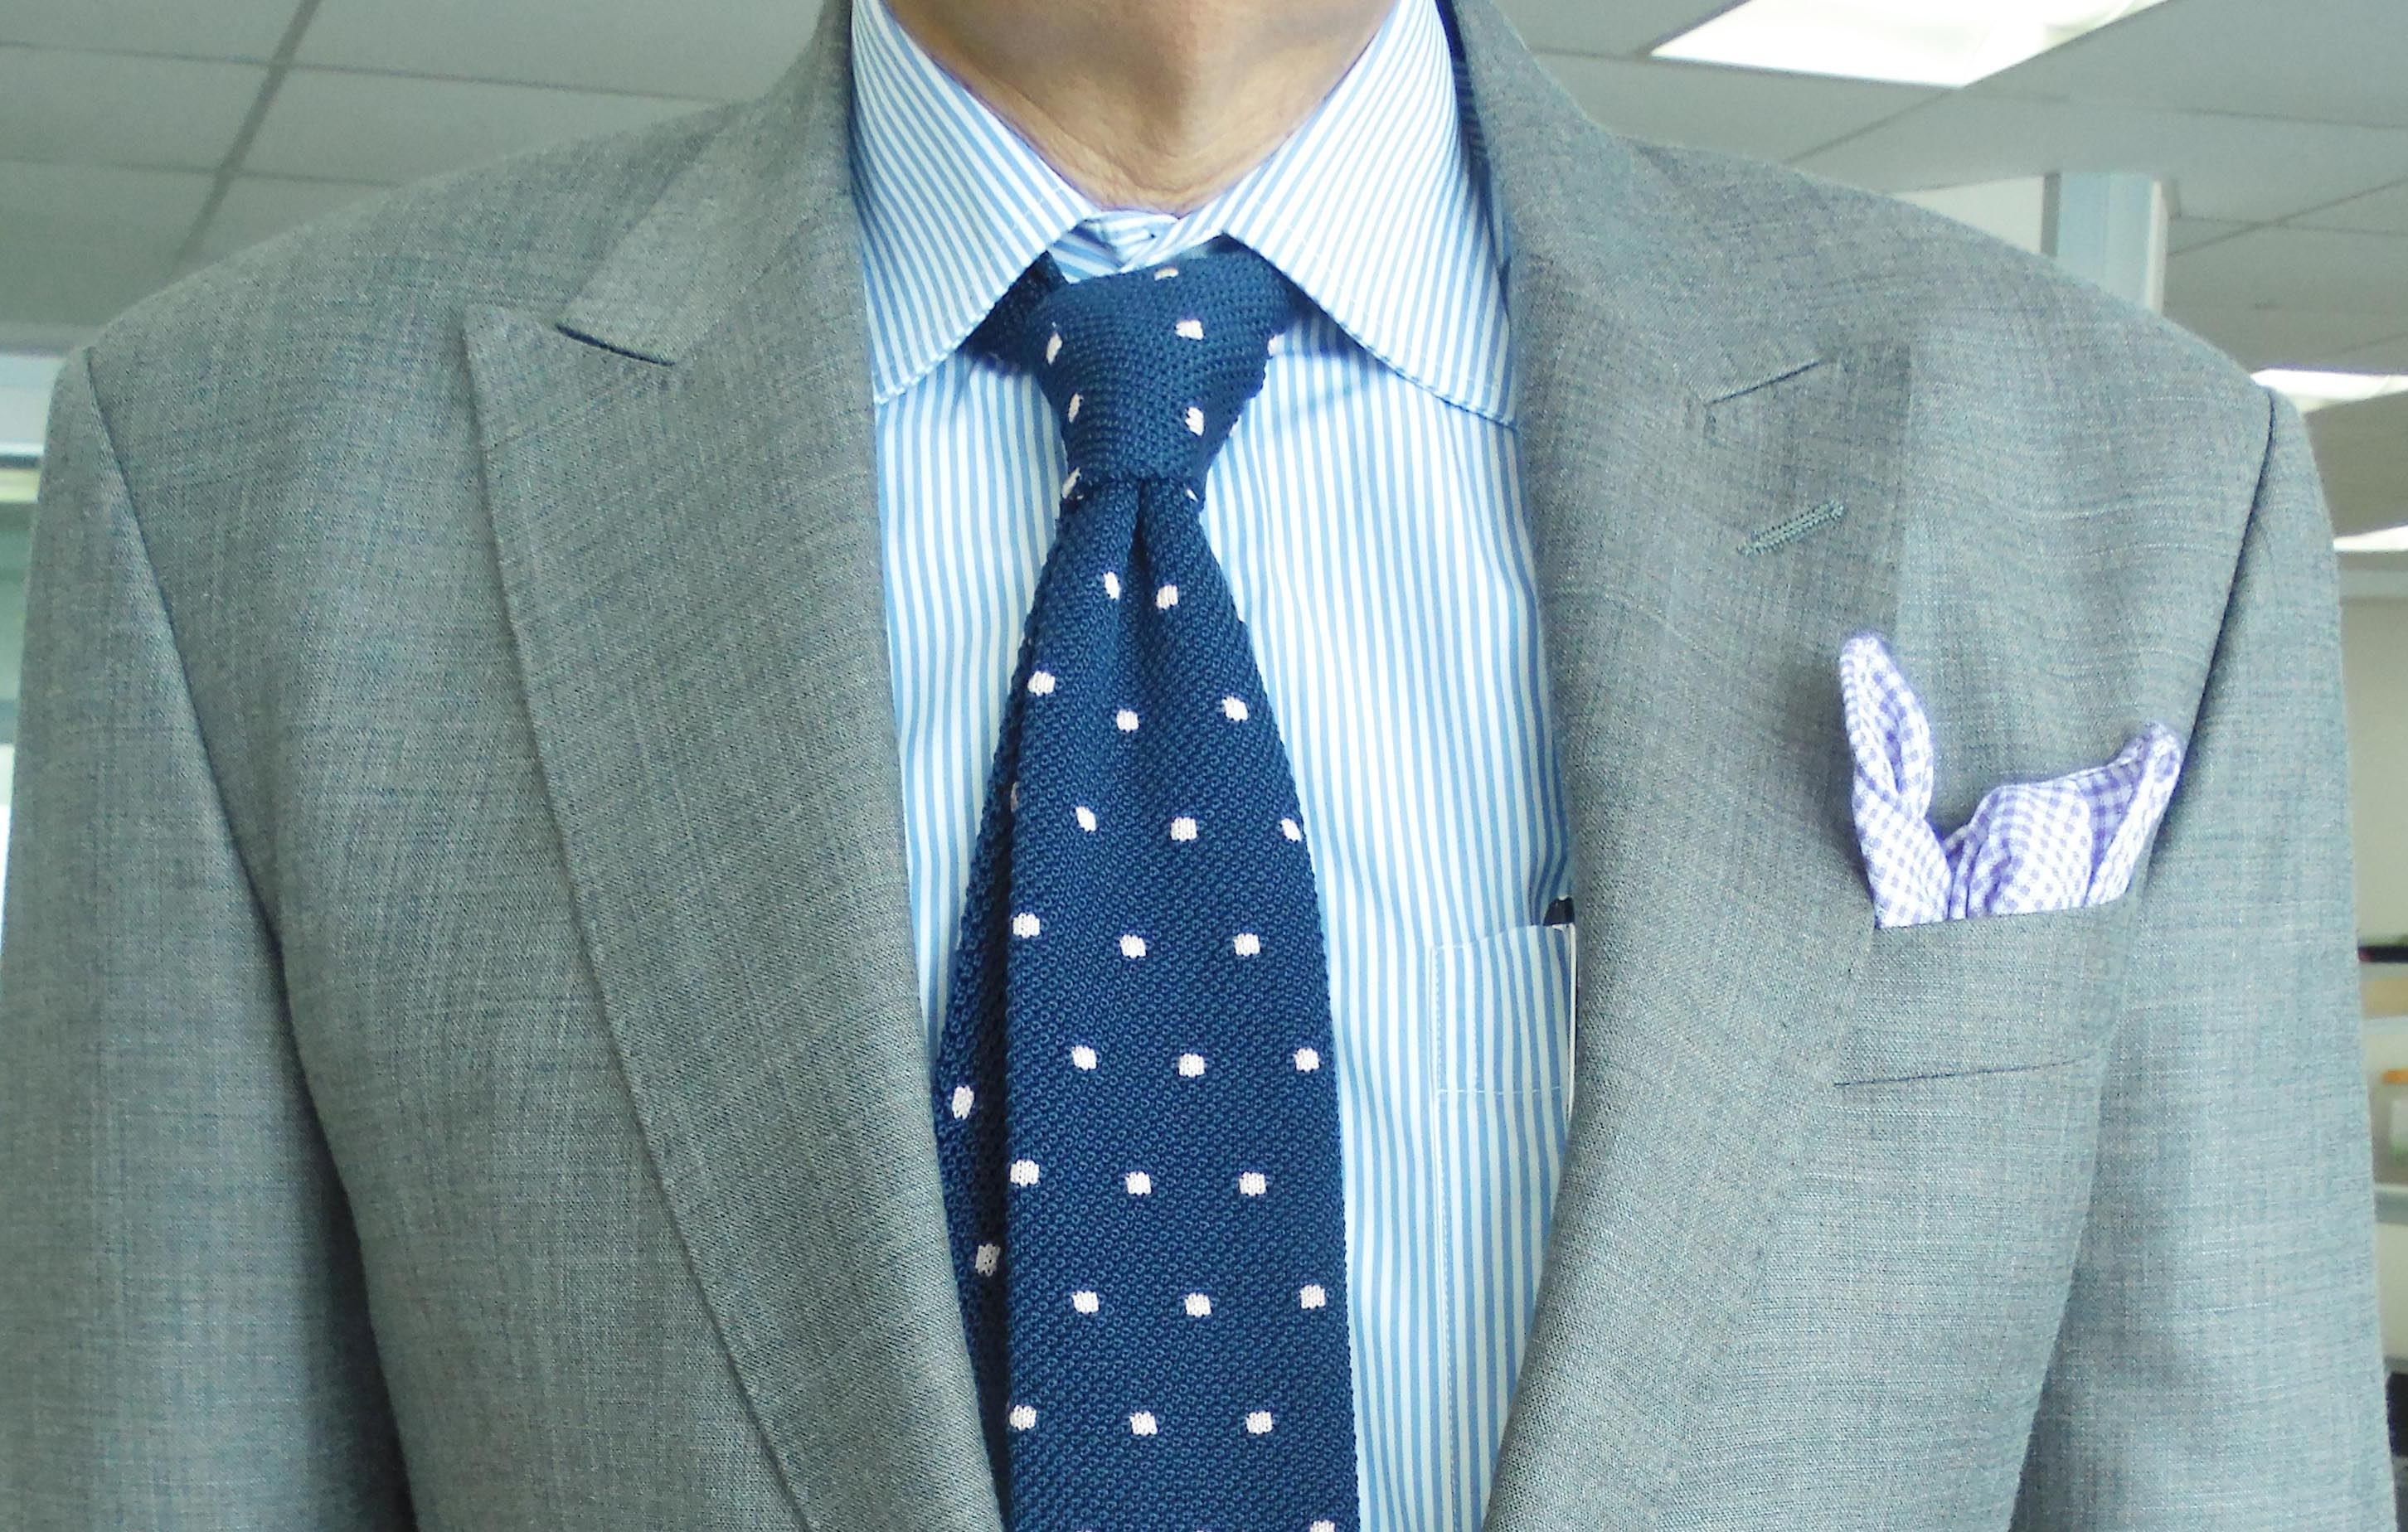 9f52933245e17 ... linen pocket square Gray suit, blue stripe shirt, blue silk knit tie  with white dots, blue